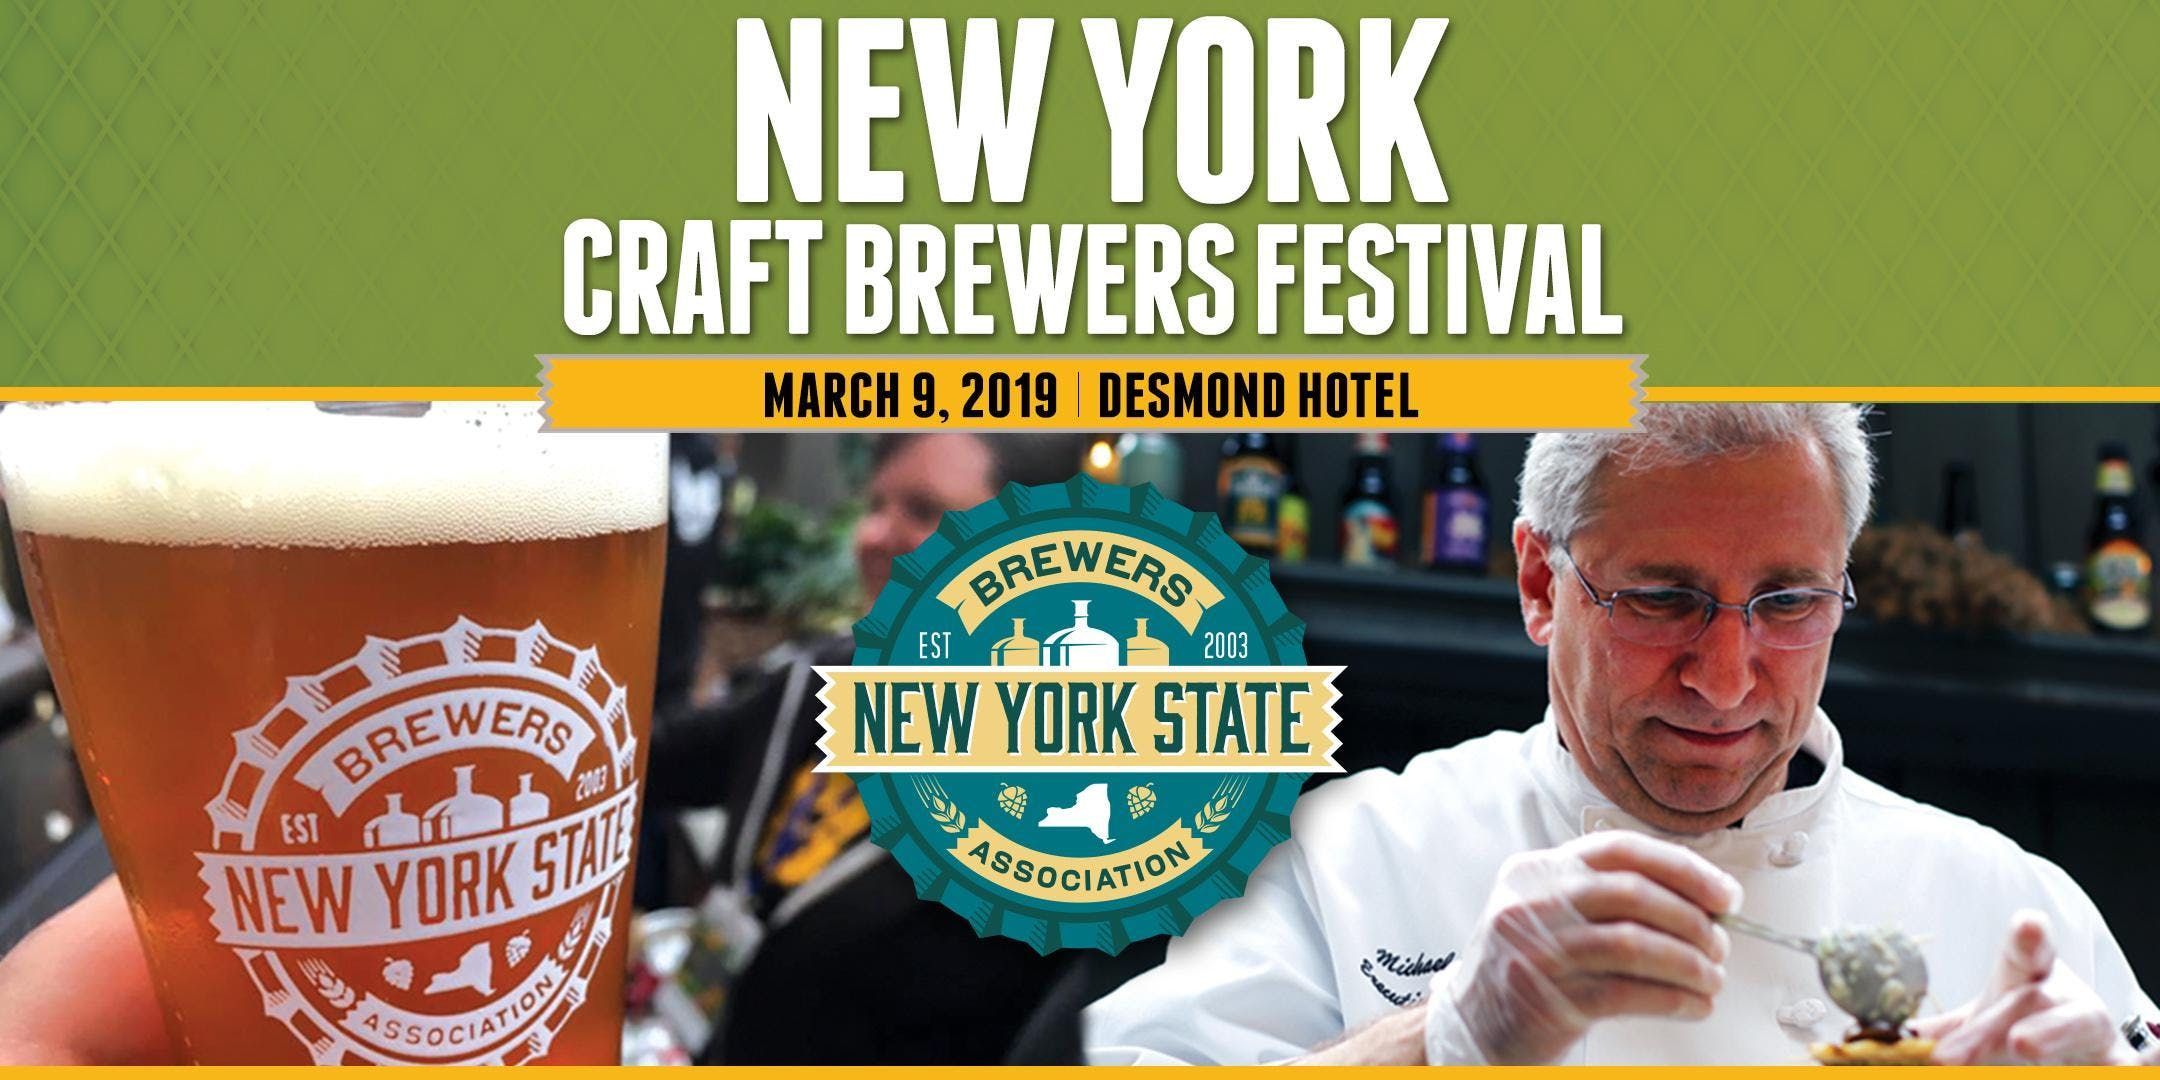 New York Craft Brewers Festival - General Admission